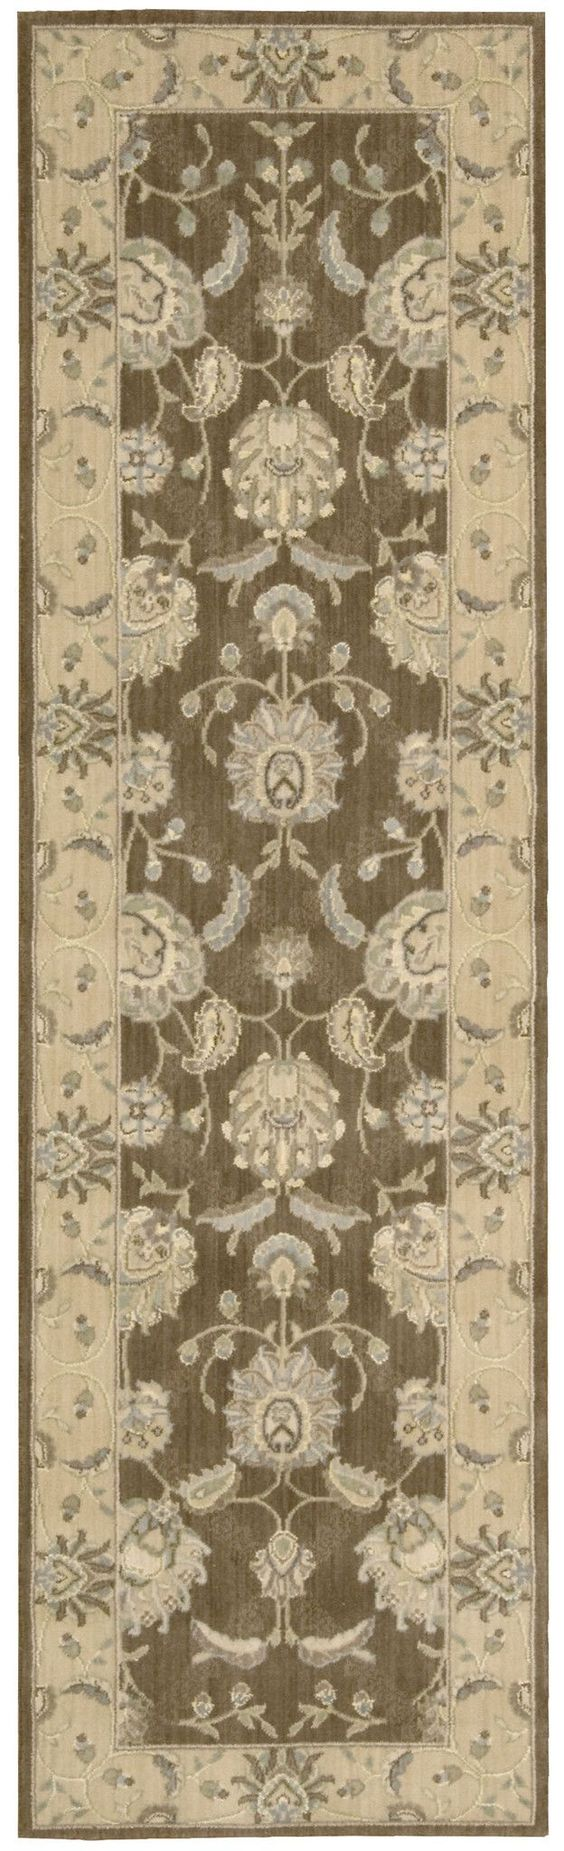 Nourison Persian Empire Chocolate Area Rug PE22 CHO (Runner)